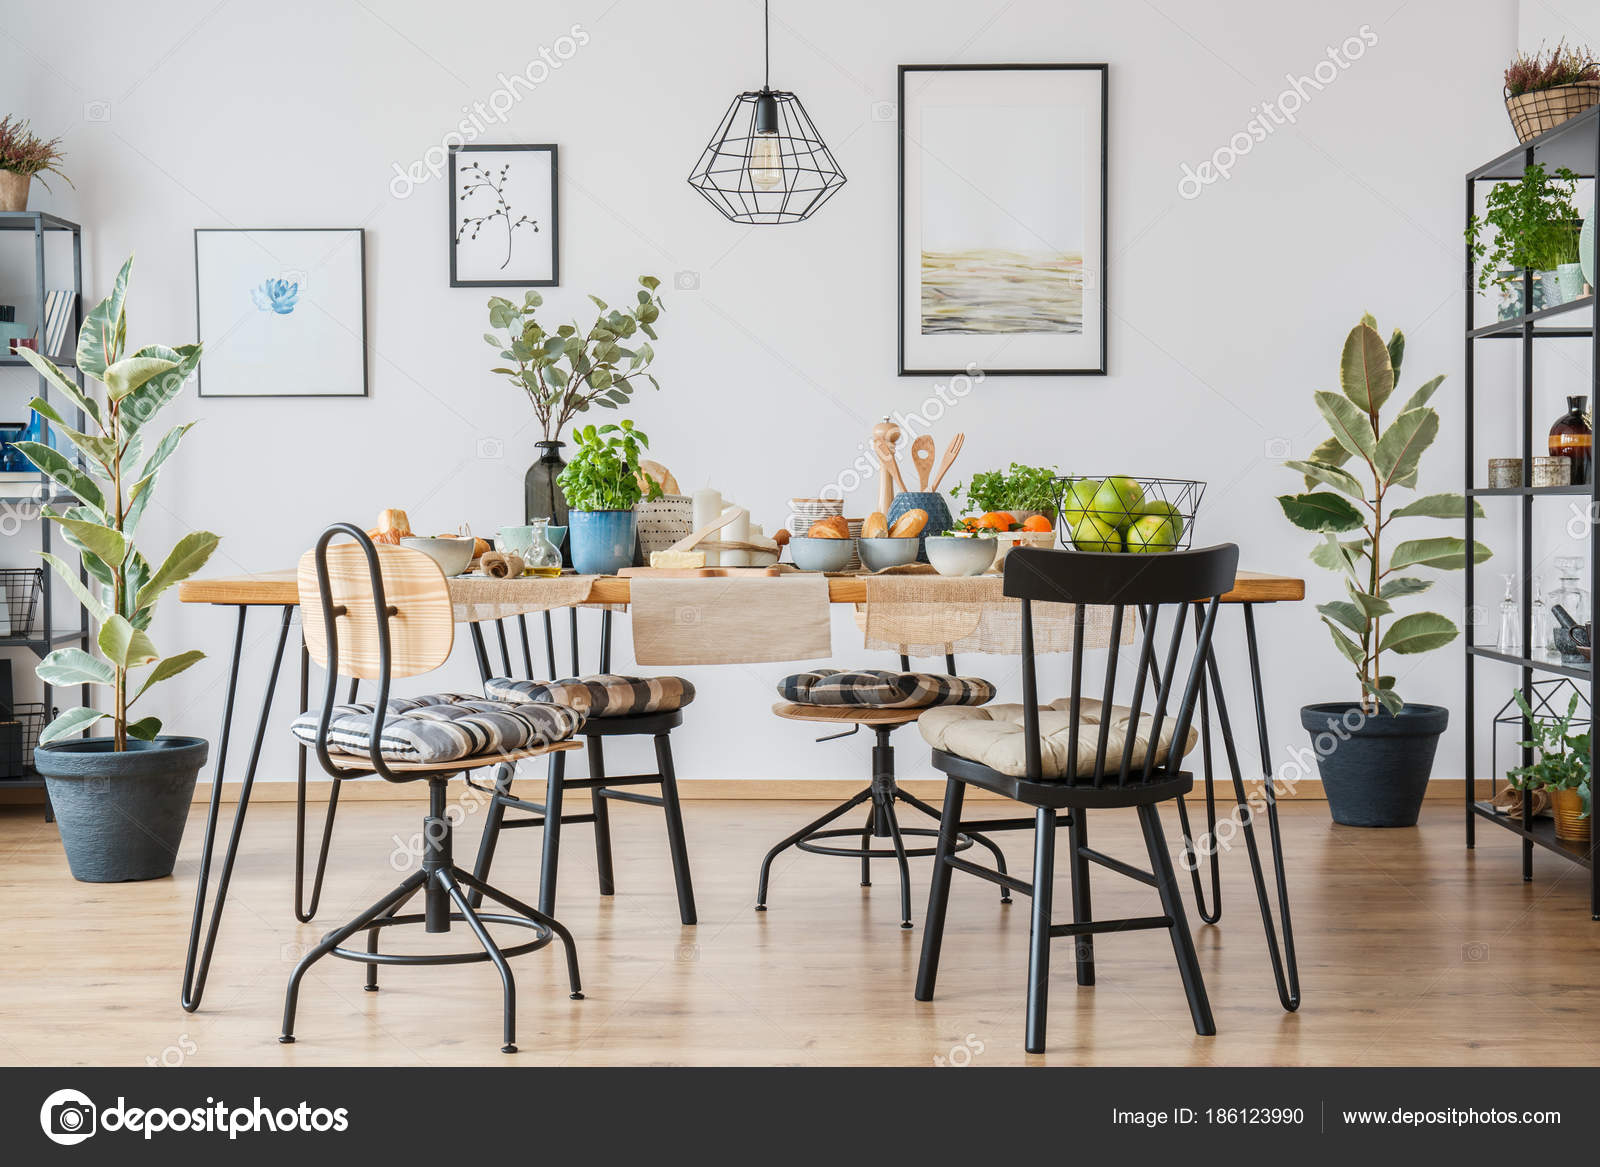 Chairs At Table In Cozy Dining Room Interior With Ficus, Lamp And Gallery  Of Posters On White Wall U2014 Photo By Photographee.eu